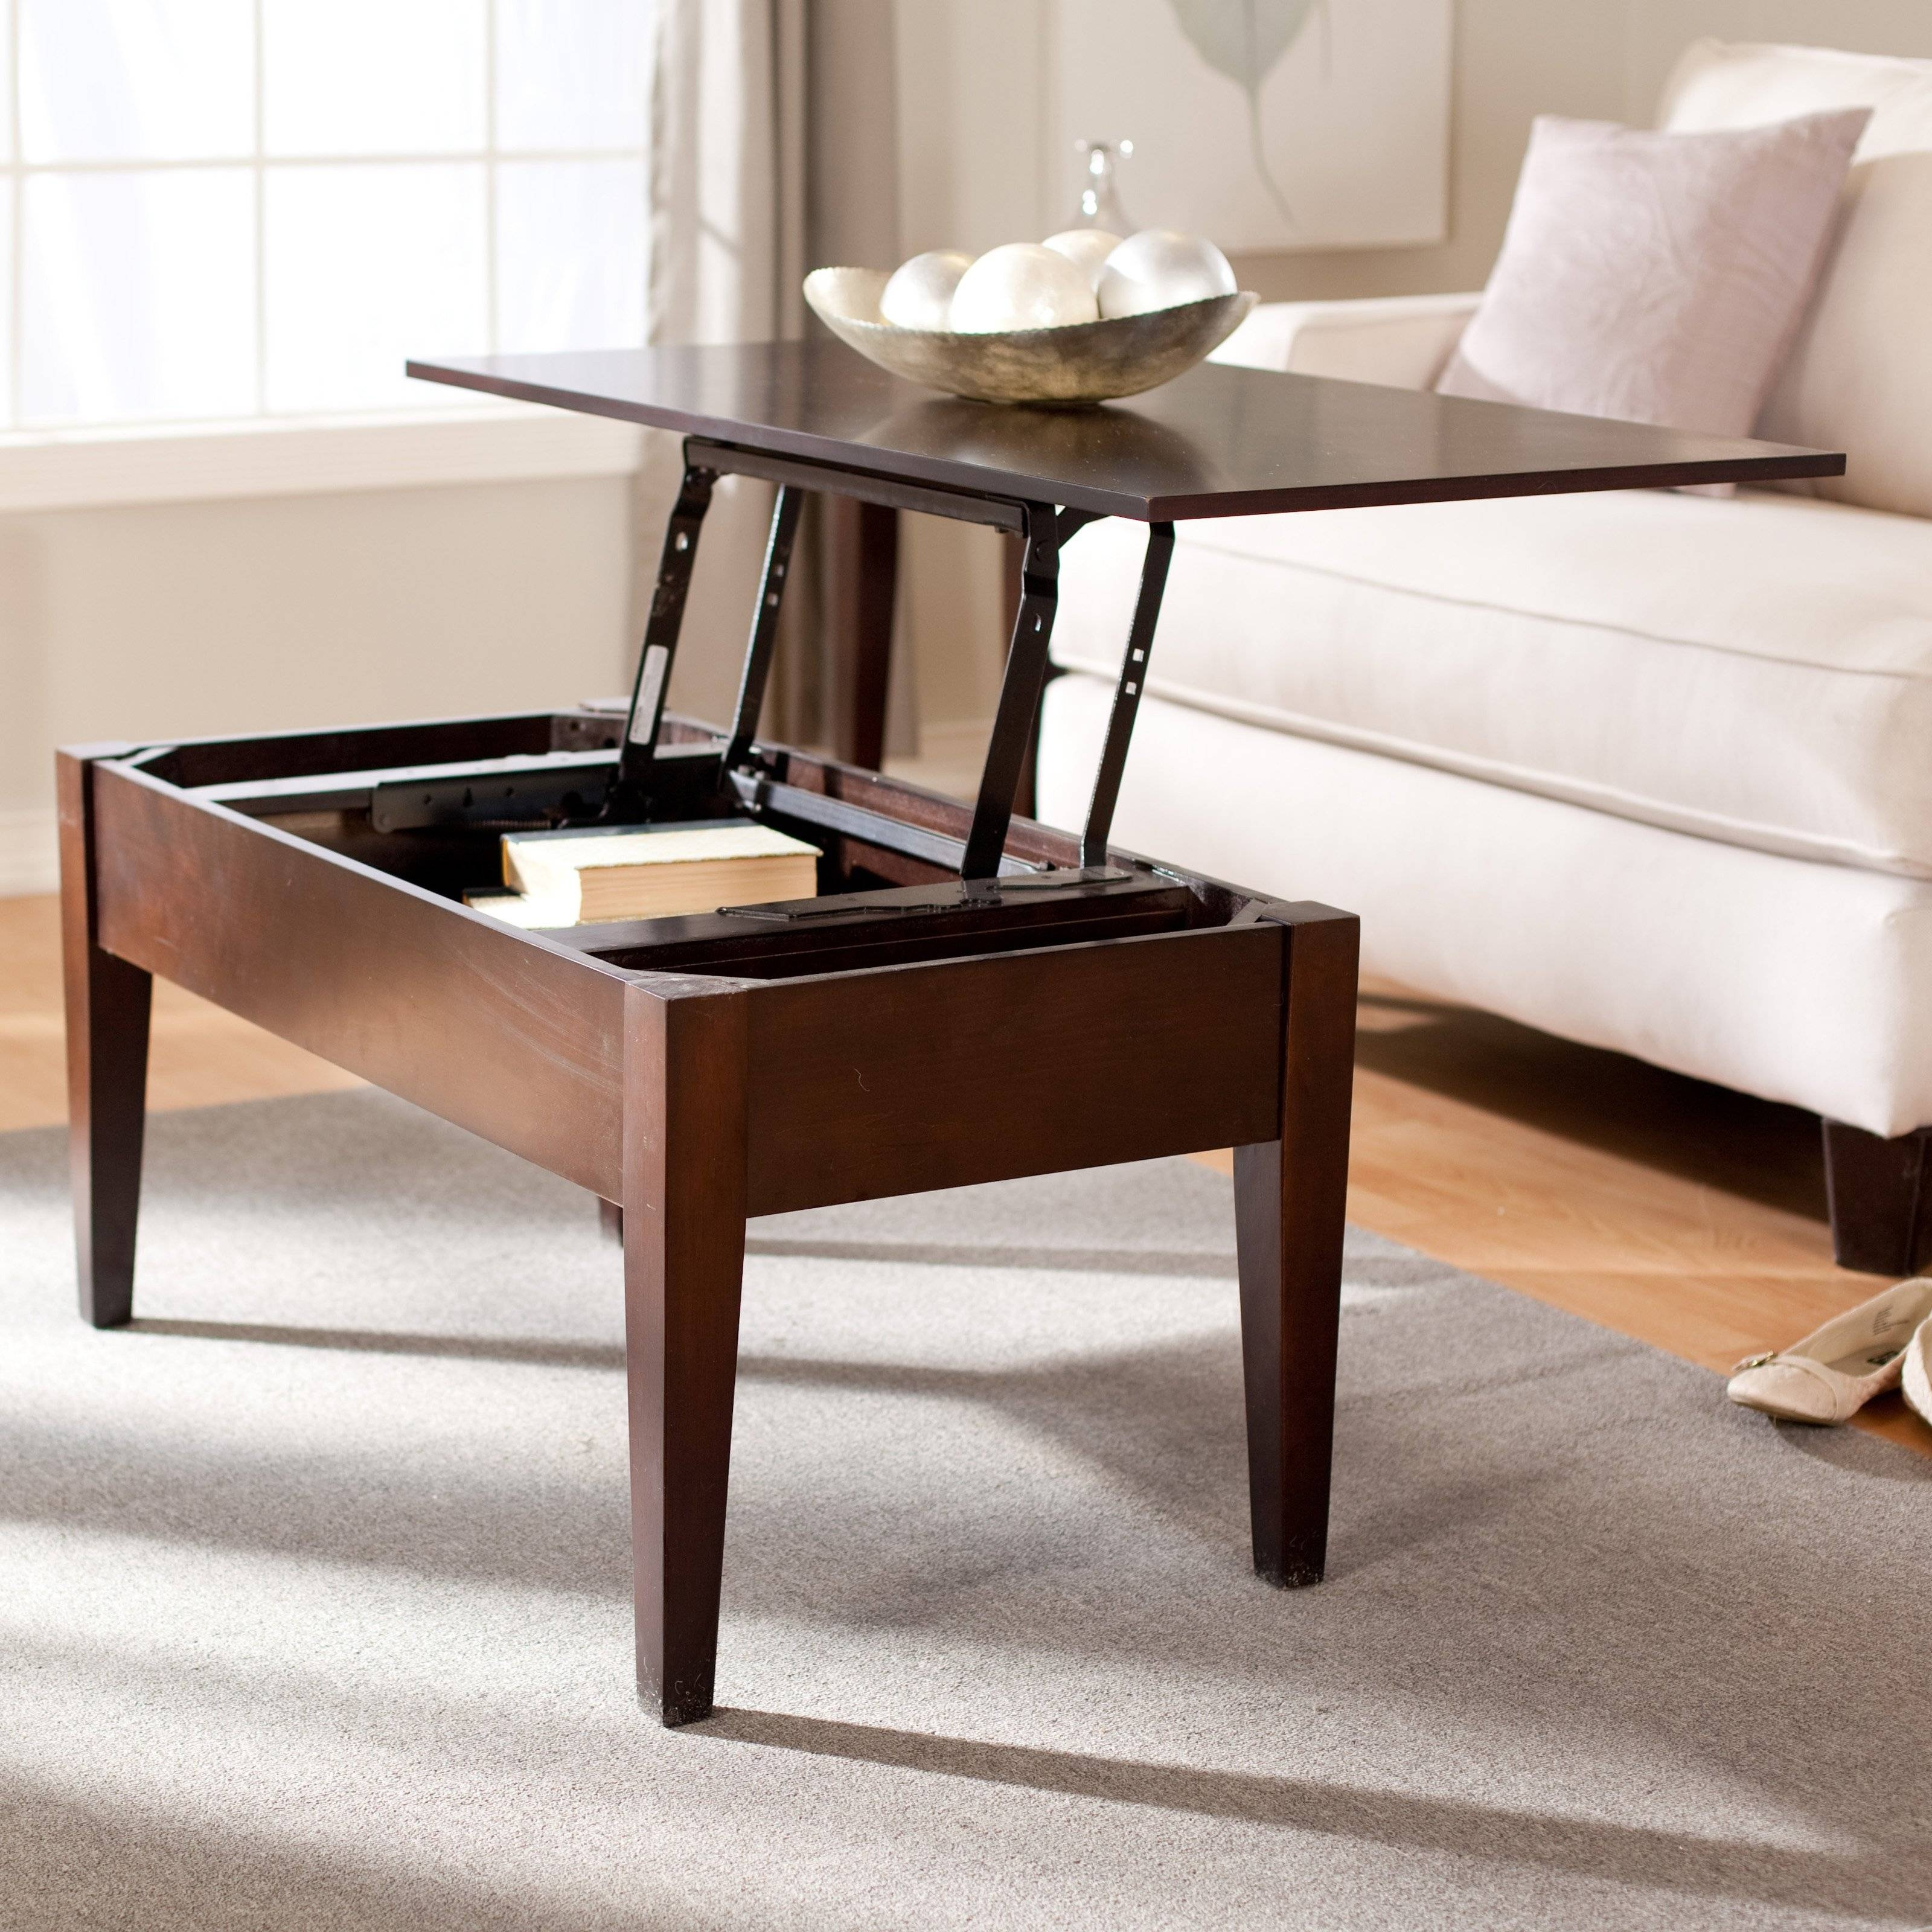 Turner Lift Top Coffee Table - Espresso | Hayneedle with regard to Lift Top Coffee Tables (Image 25 of 30)